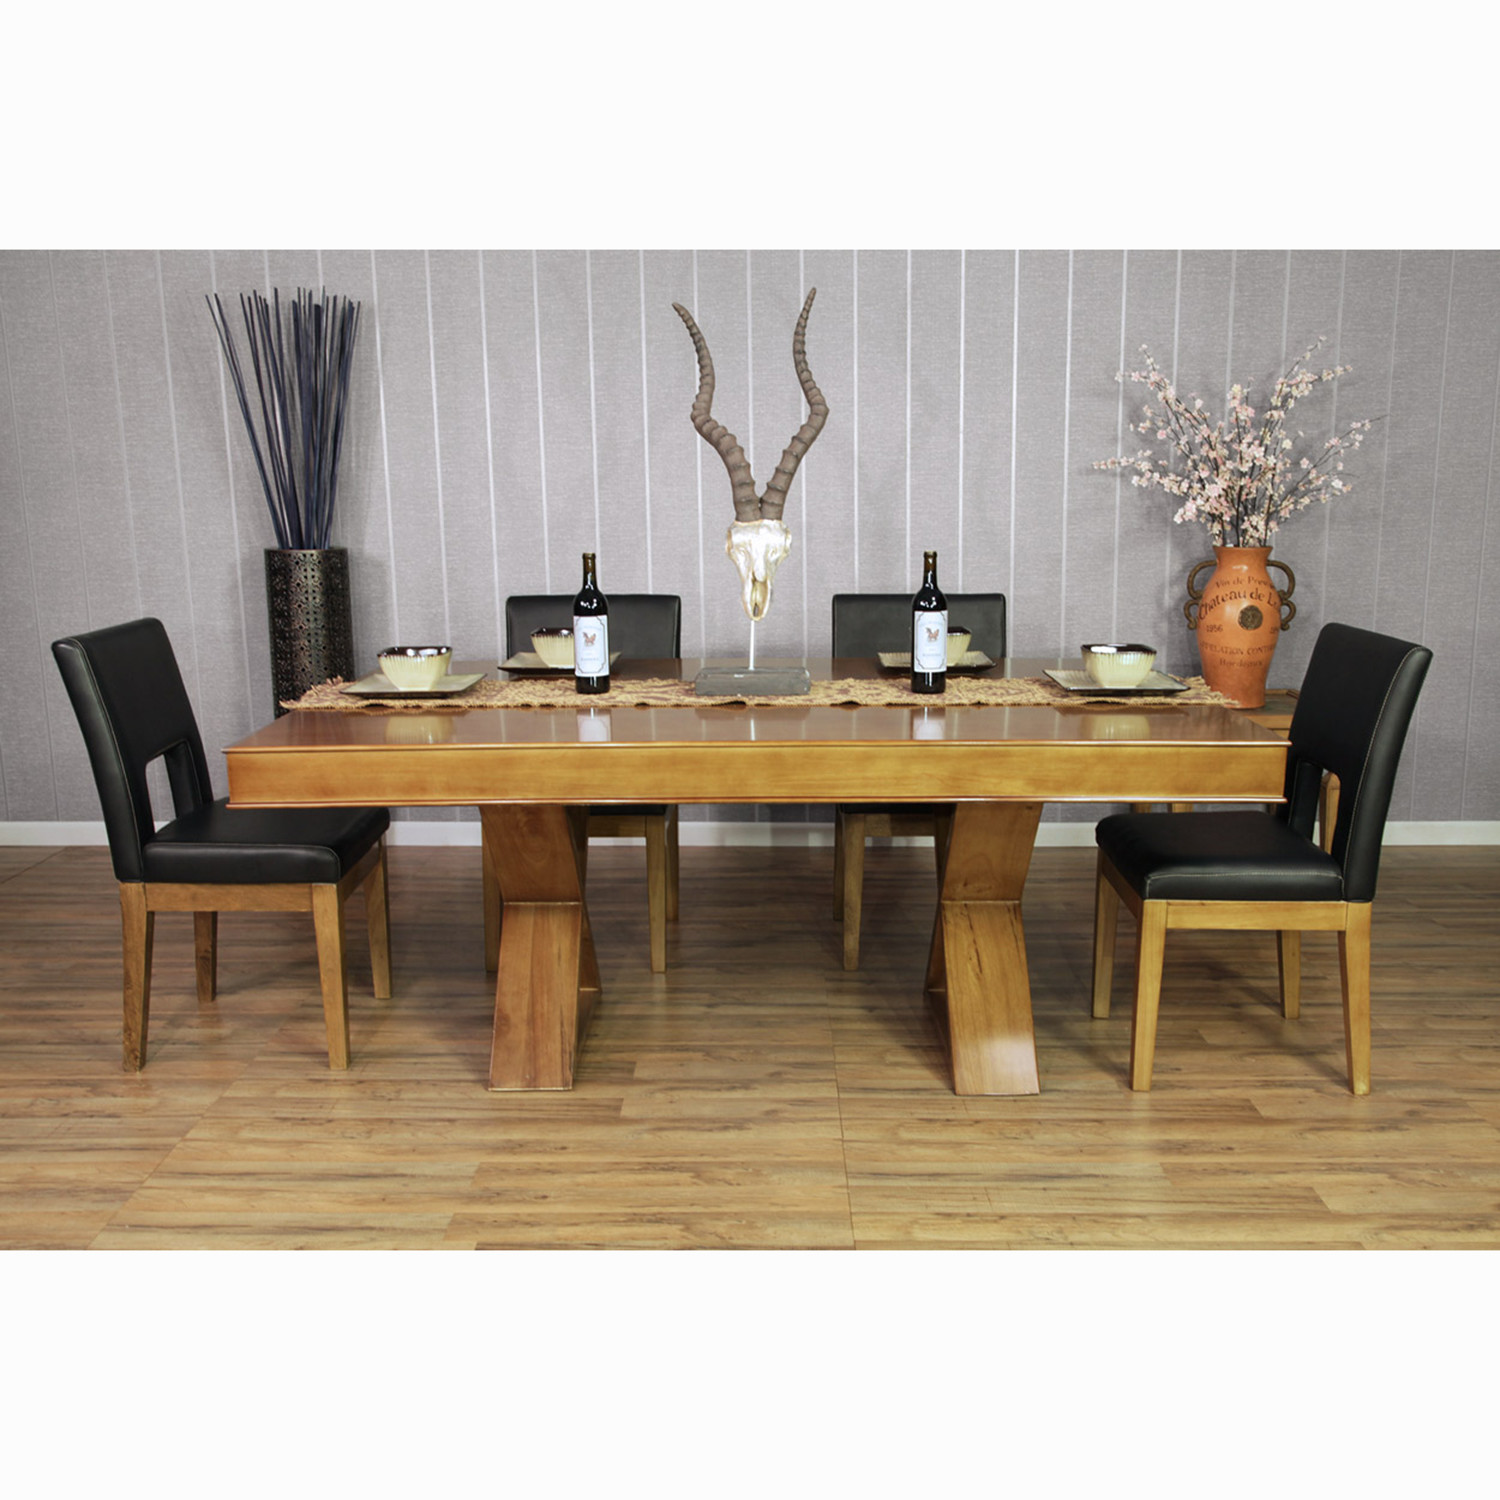 Helmsley Poker Dining Table // Black (Table Only)